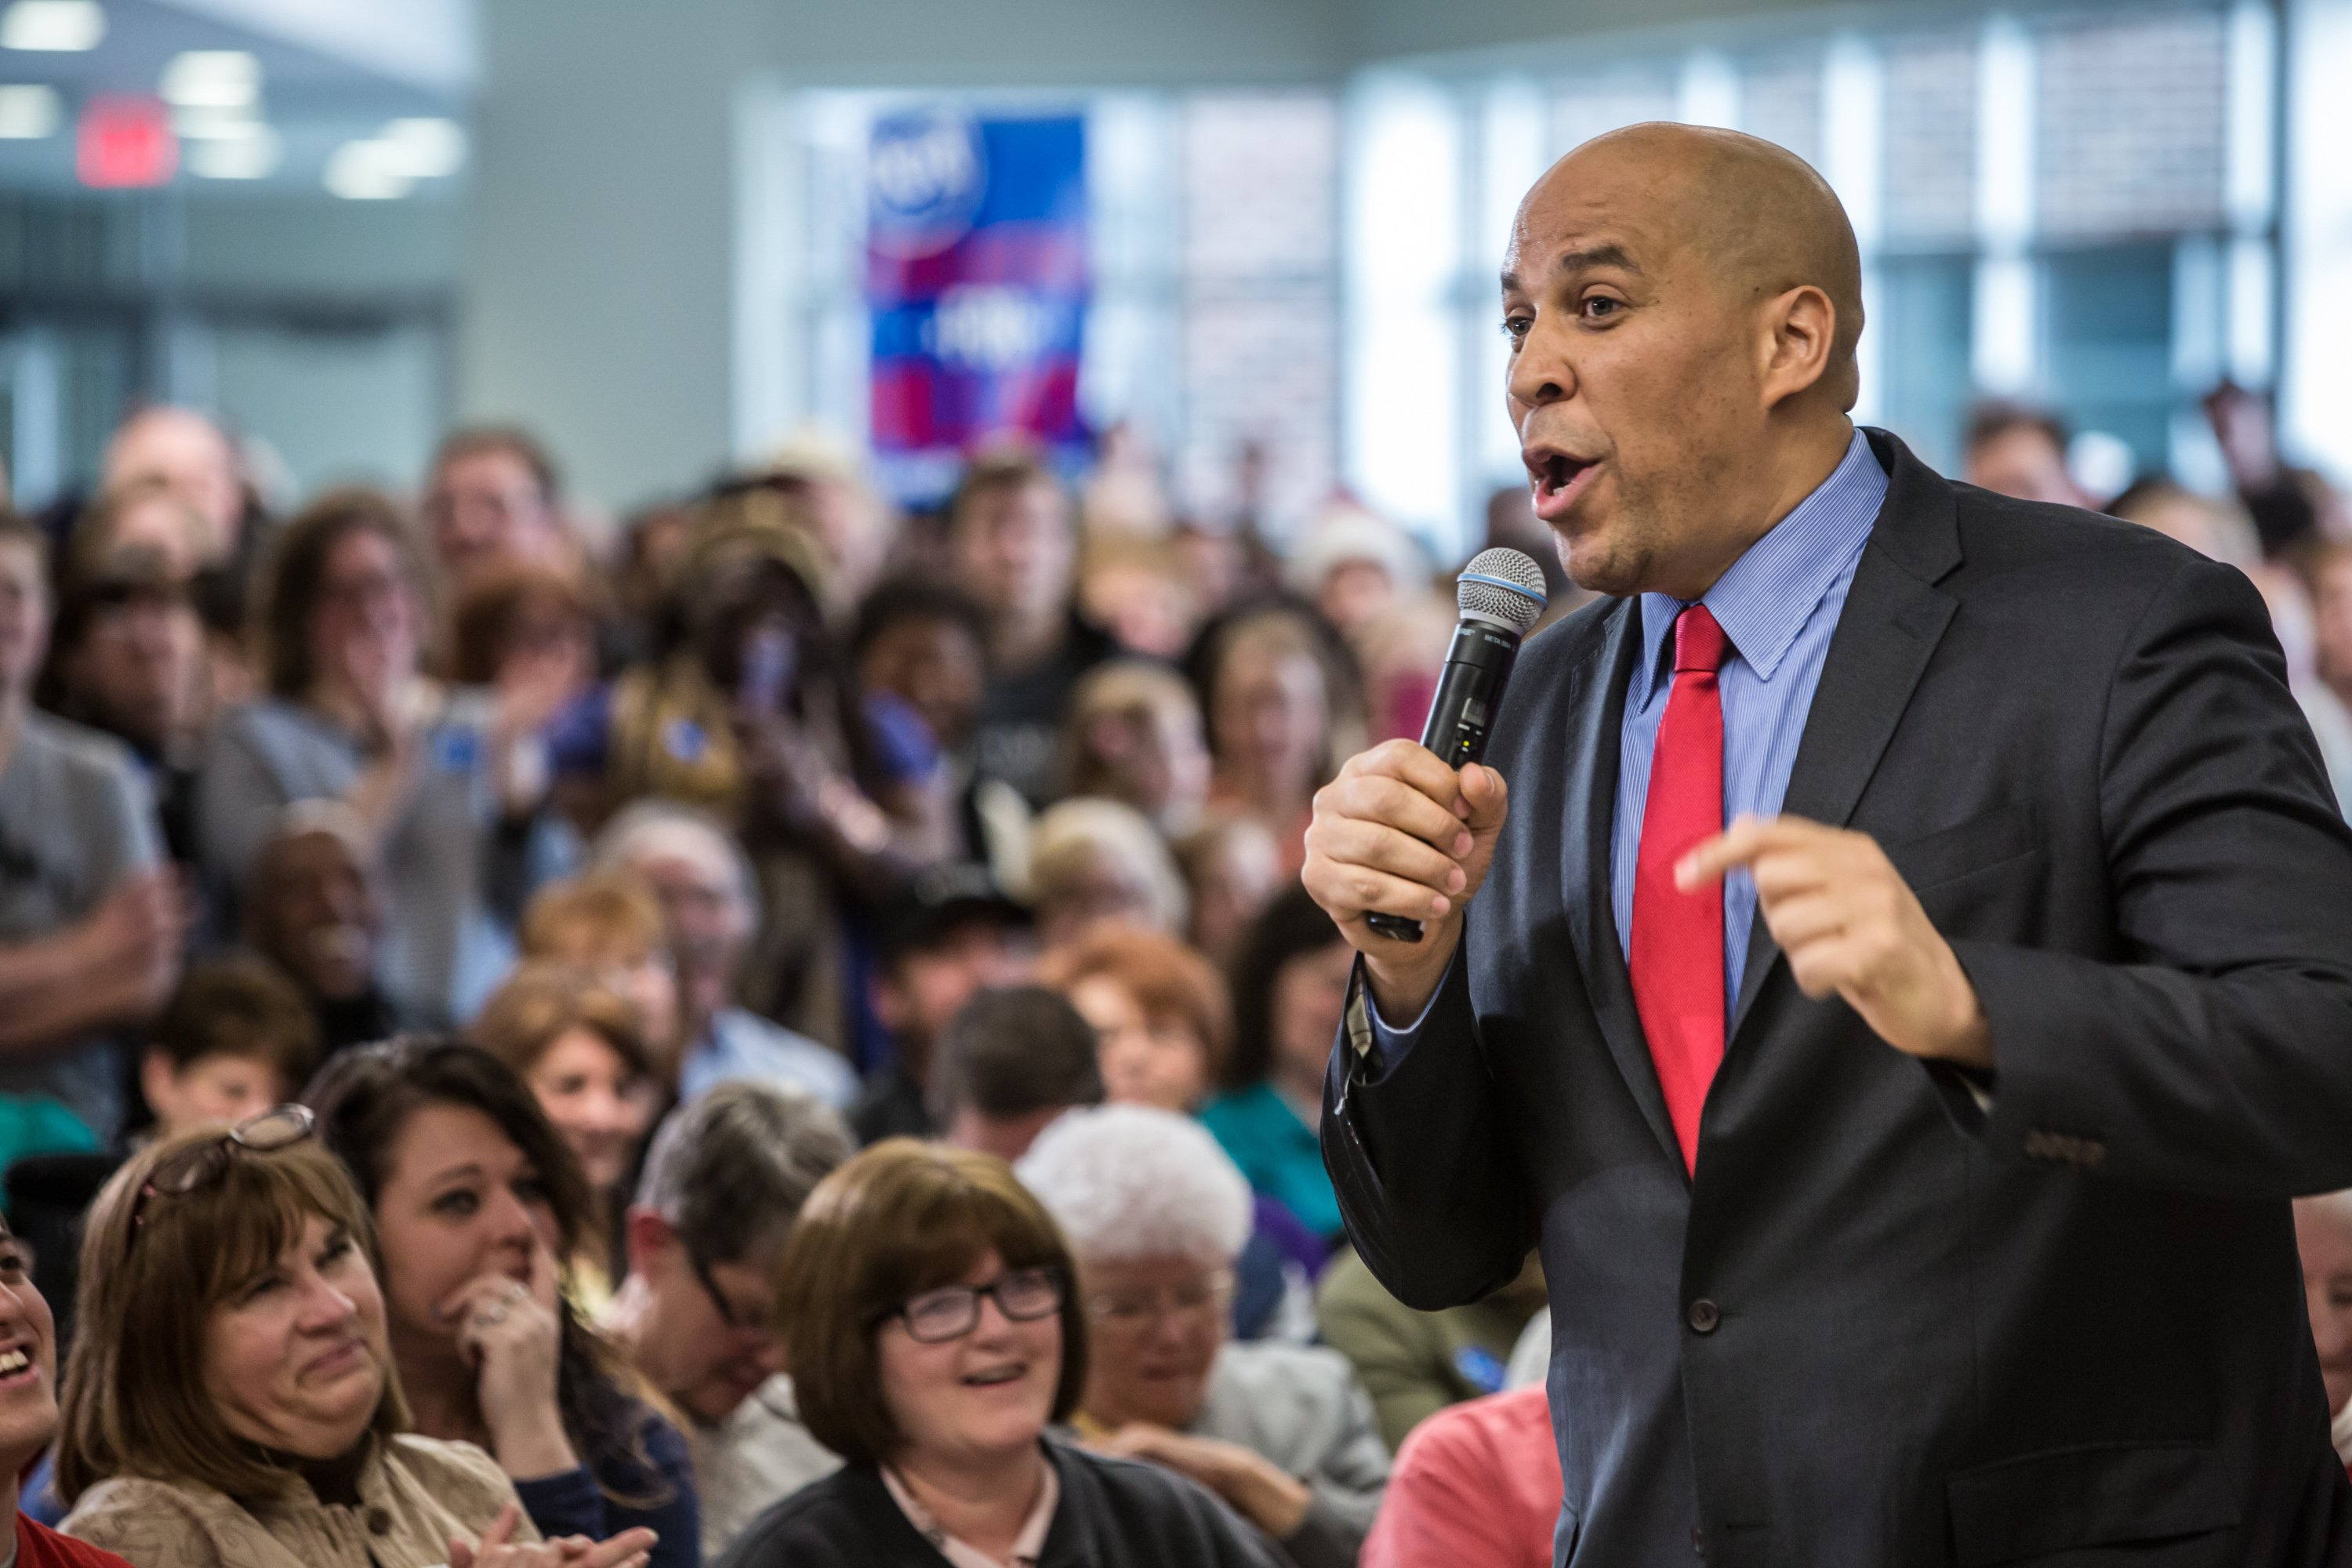 Cory Booker introduces Democratic presidential candidate Hillary Clinton at a campaign event in Marion, IO on Jan. 24, 2016.